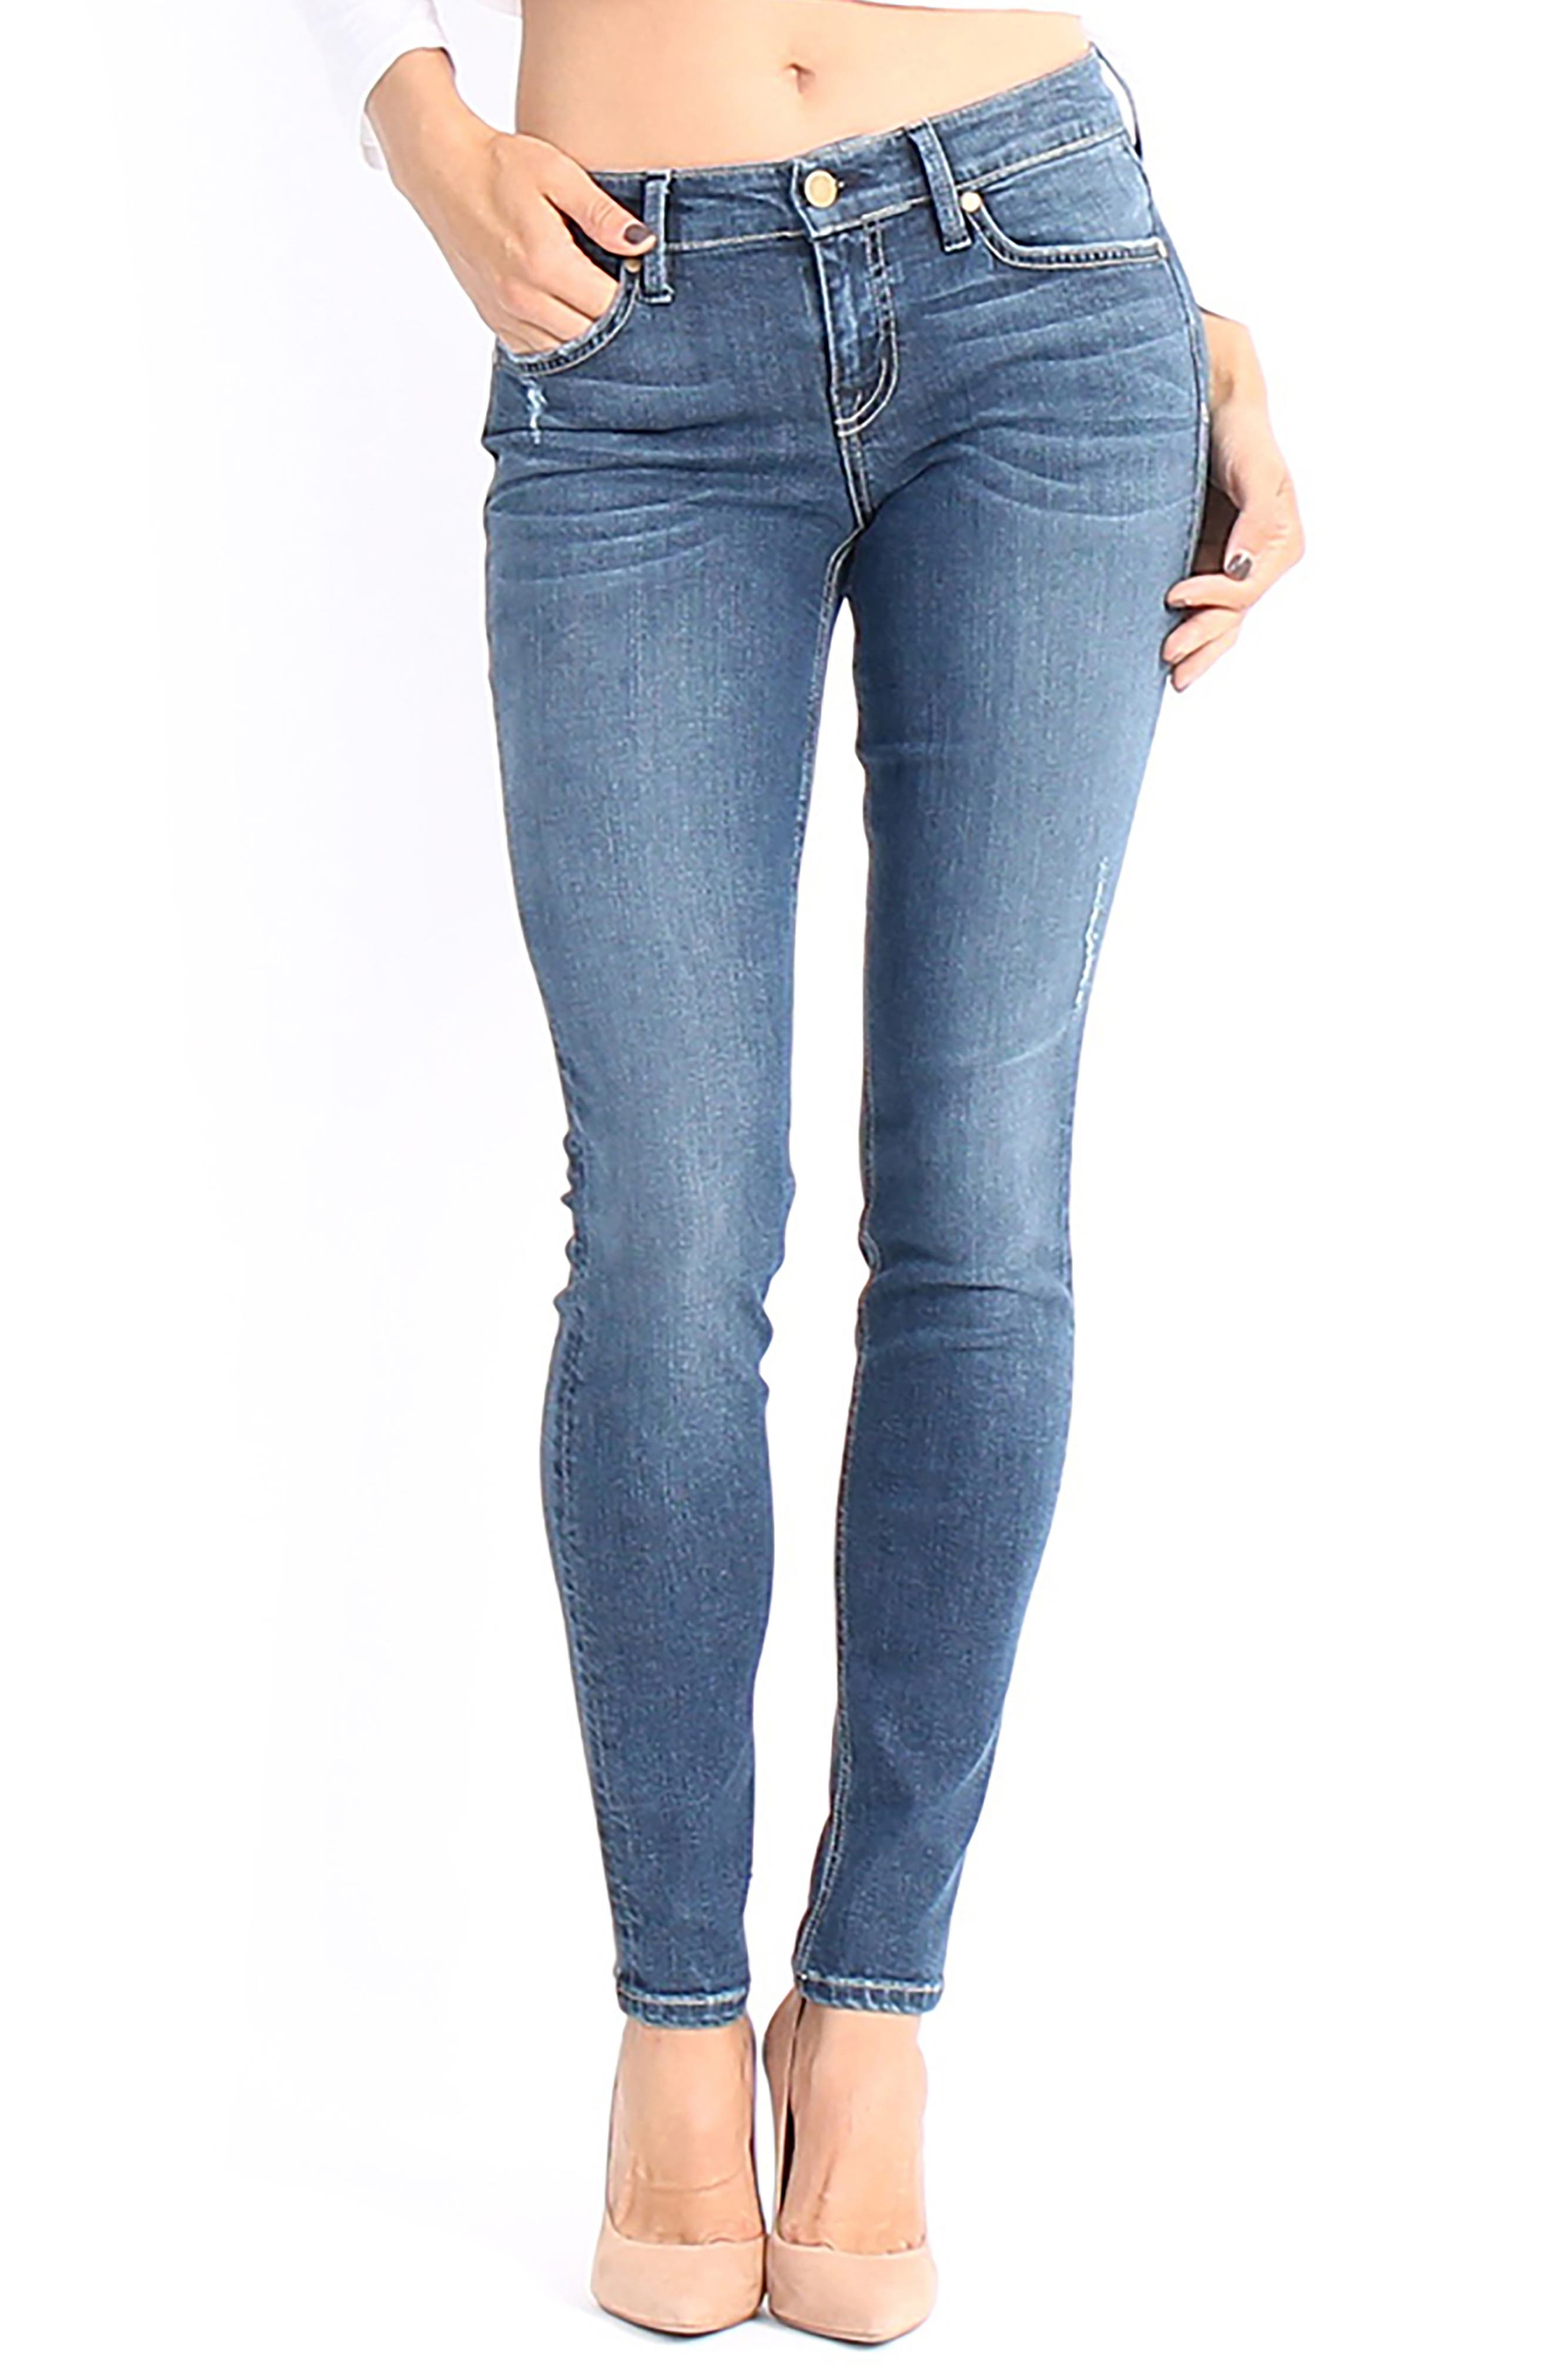 Lisa Stretch Distressed Super Skinny Jeans,                             Main thumbnail 1, color,                             472